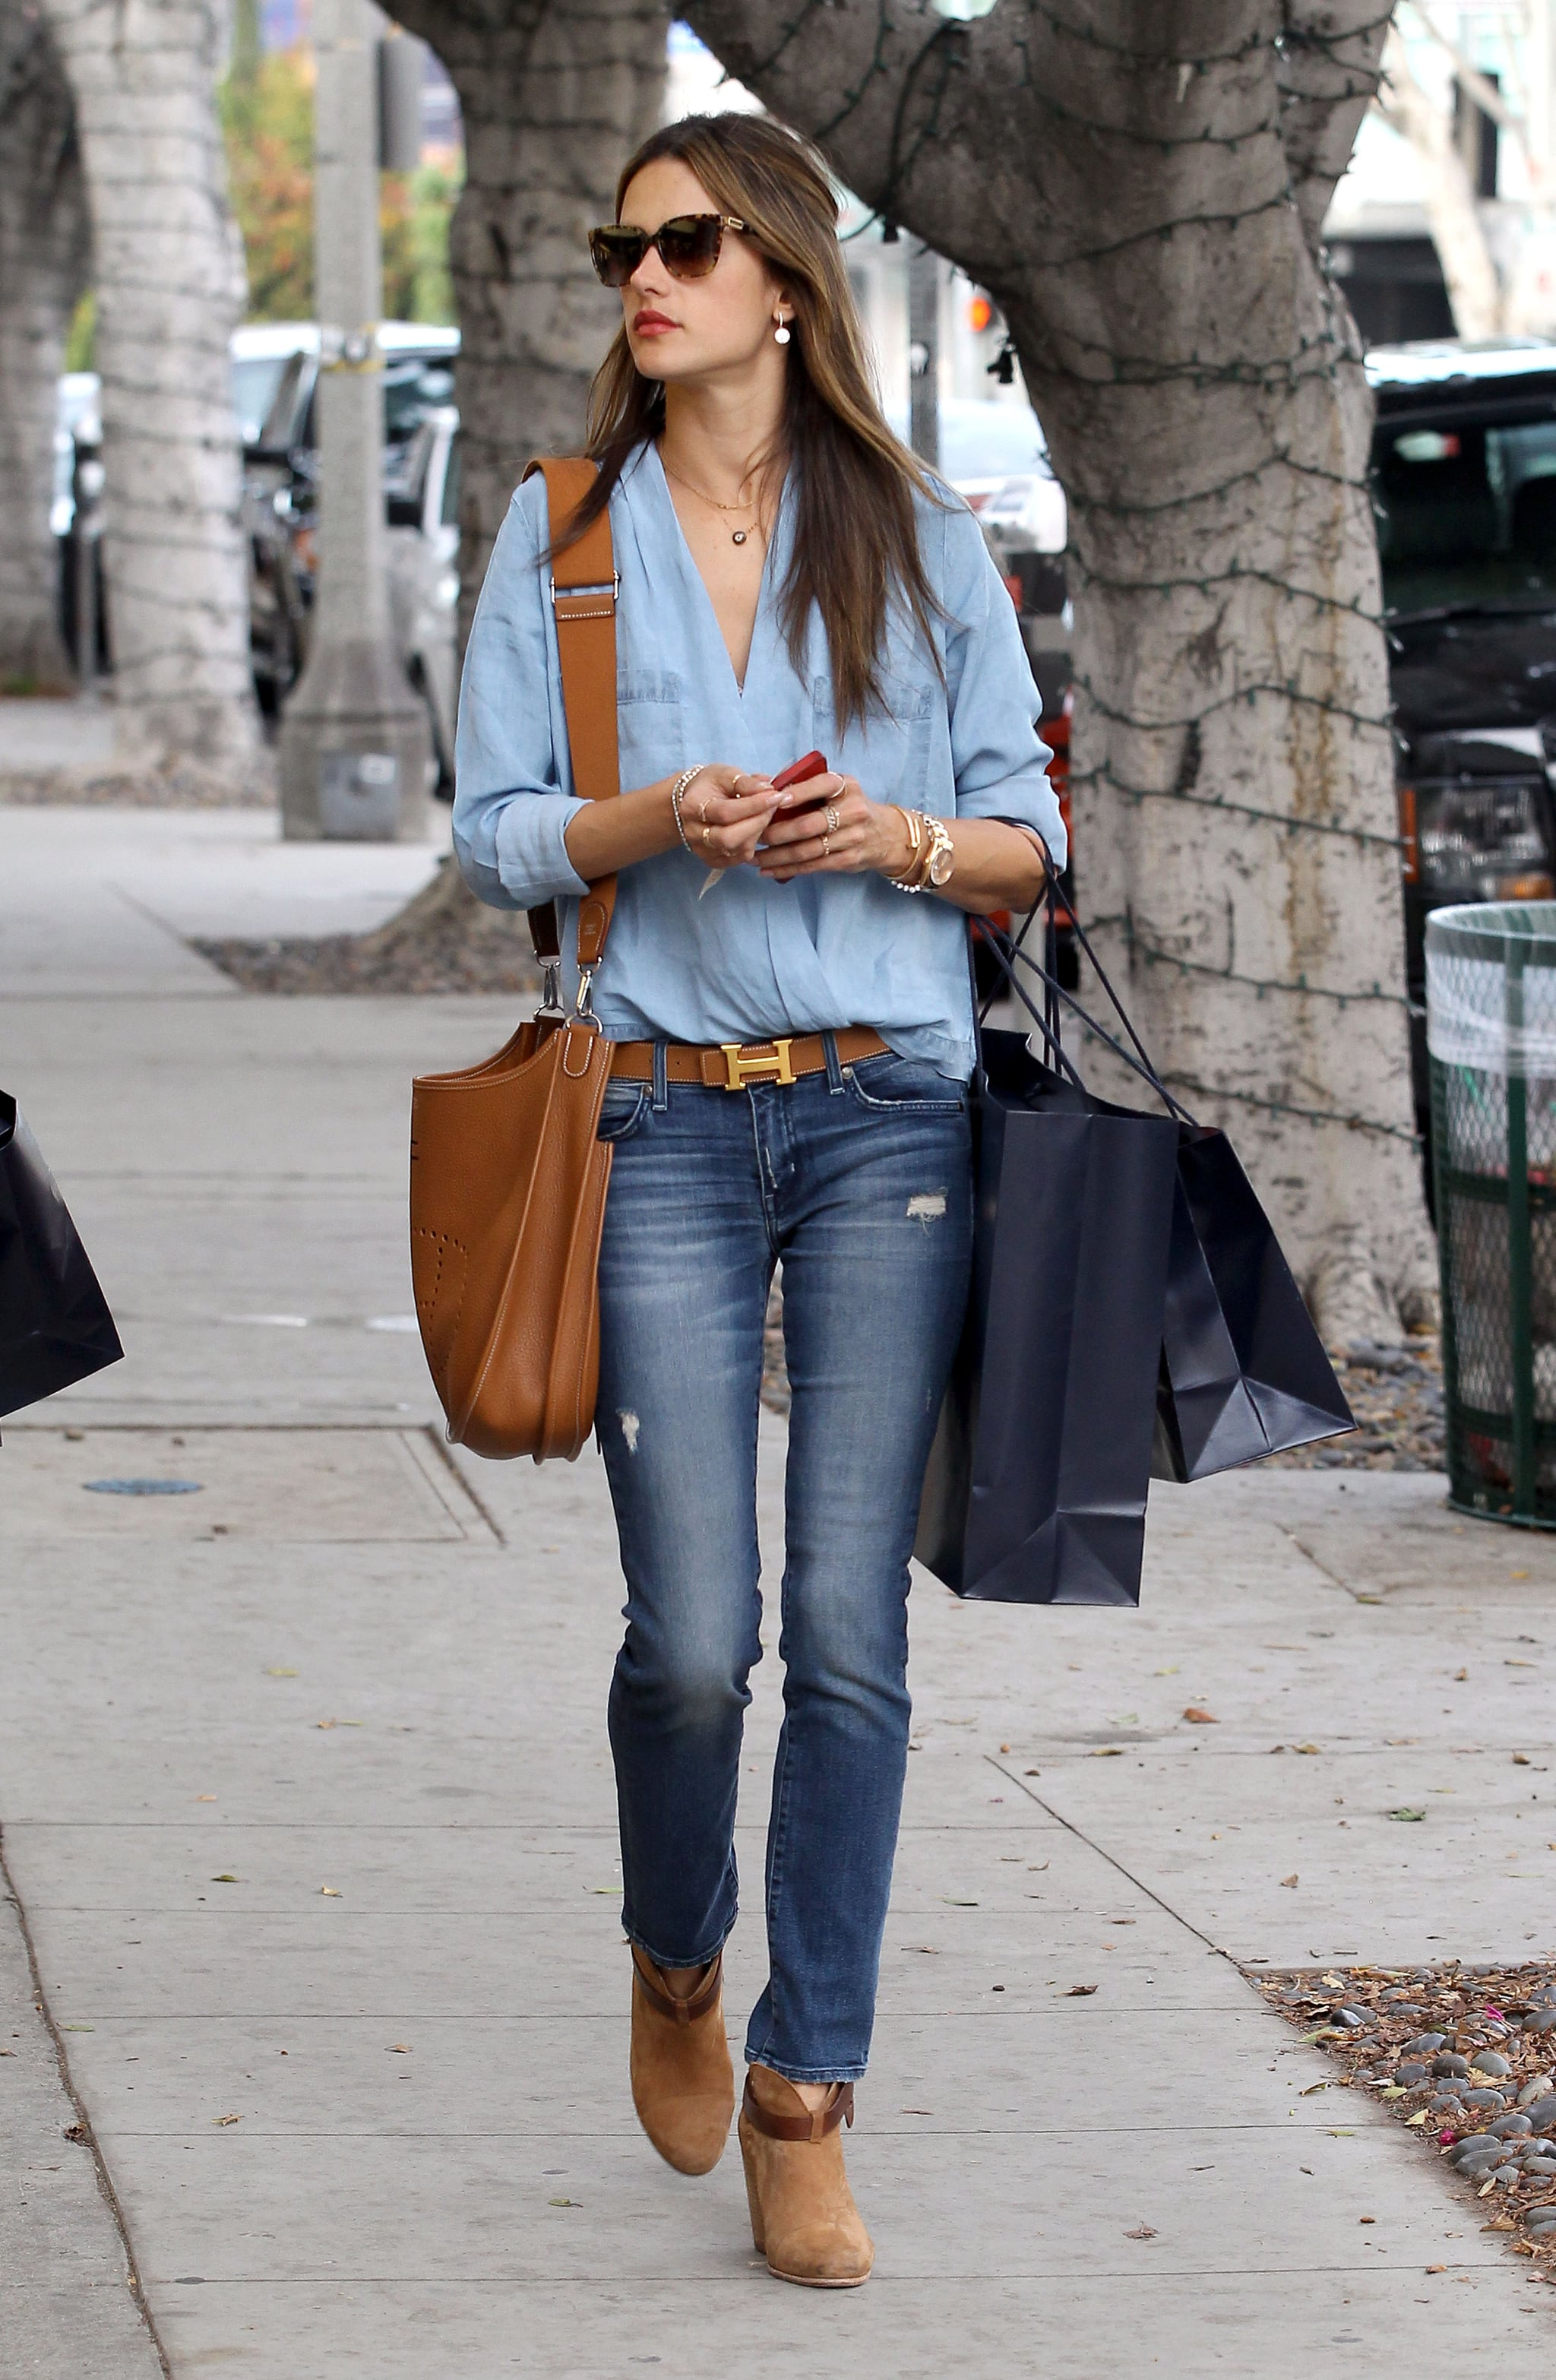 Denim on denim is nothing for the model, who paired a light chambray shirt with skinny jeans. For shoes, she picked low Rag & Bone booties.